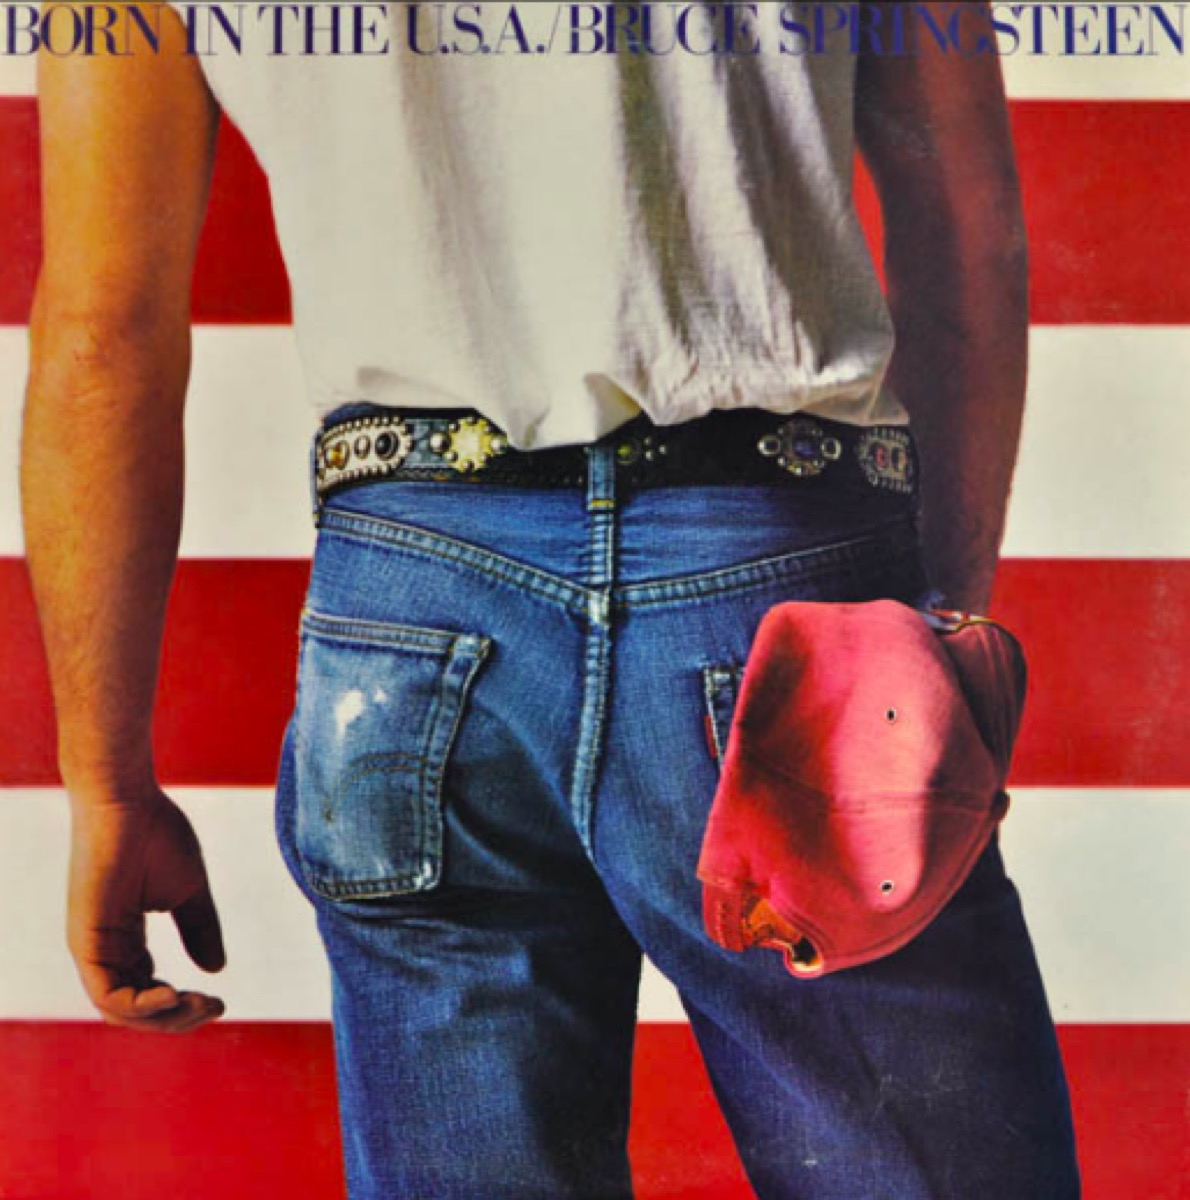 Born in the U.S.A Bruce Springsteen